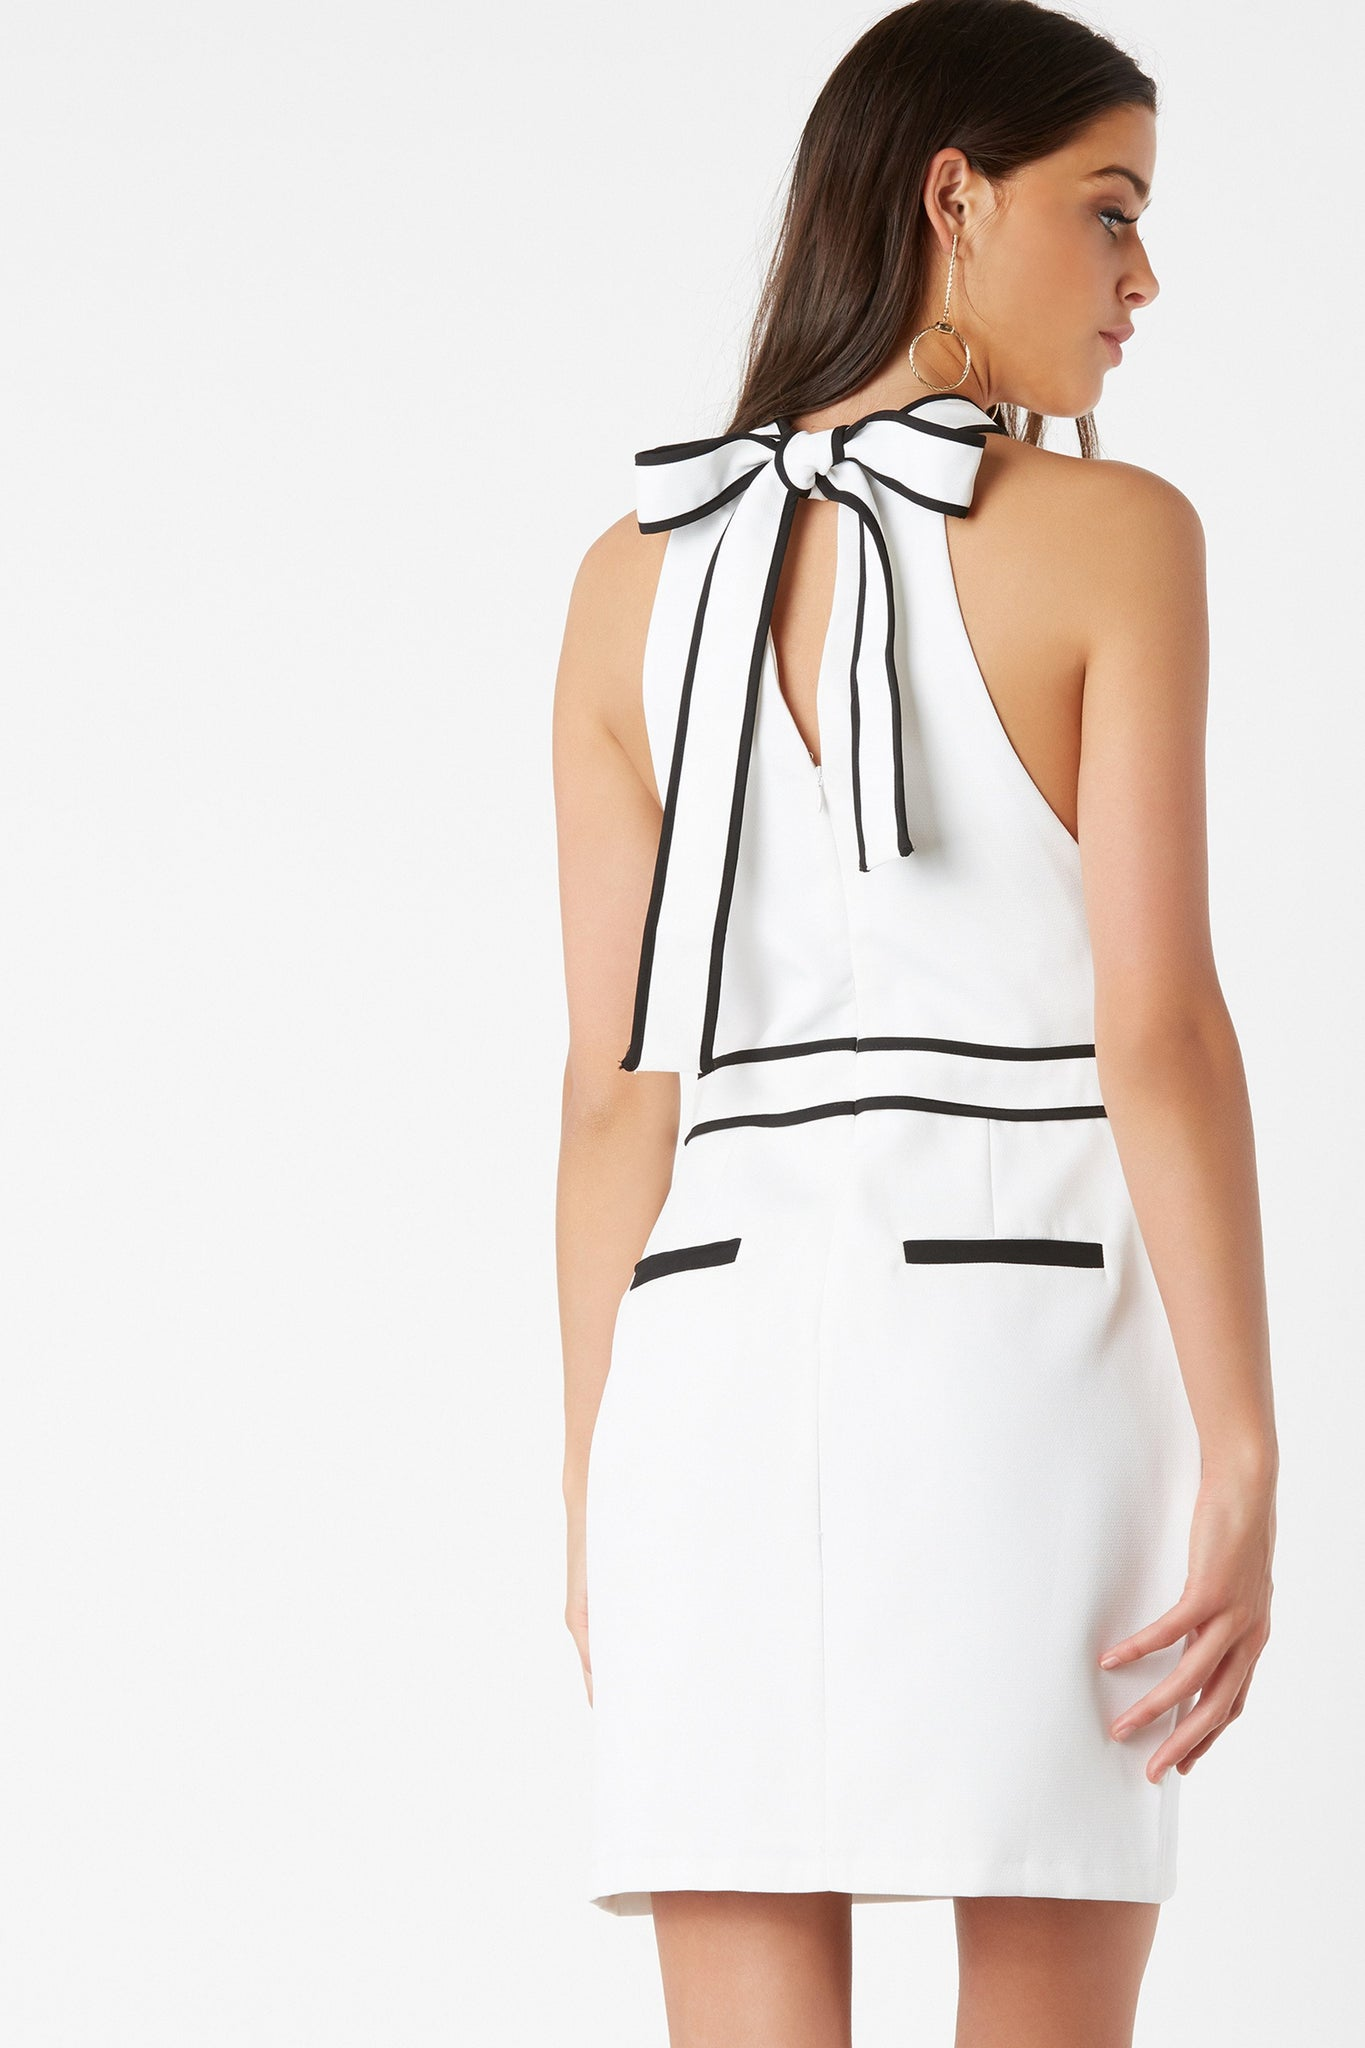 Sleeveless mock neck dress with bold piping for added detail. Long strap and faux pocket detailing in back.